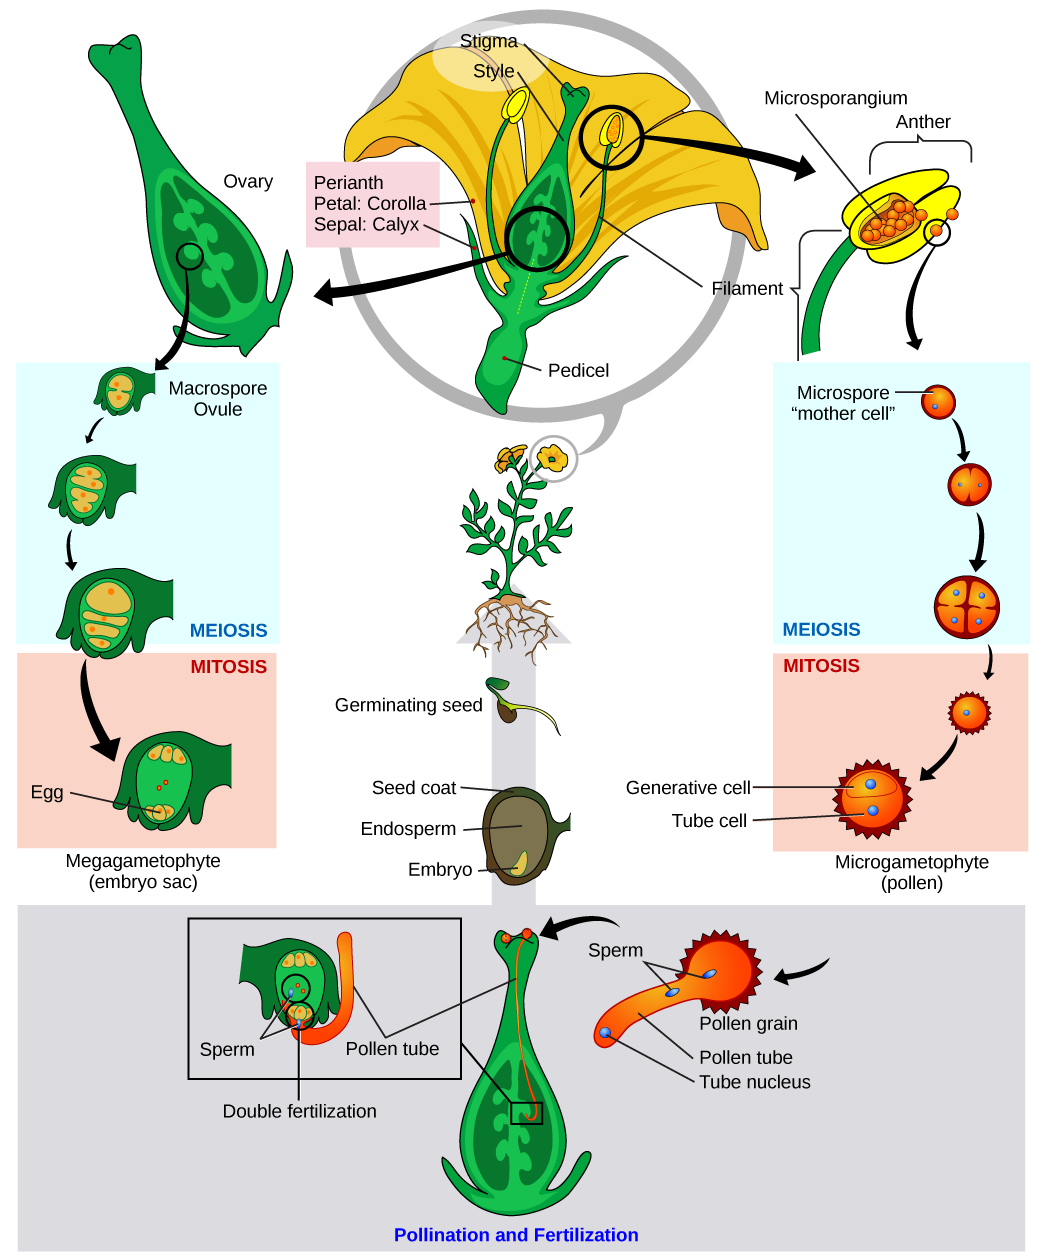 Angiosperm life cycle, by Mariana Ruiz Villareal, via Wikimedia Commons